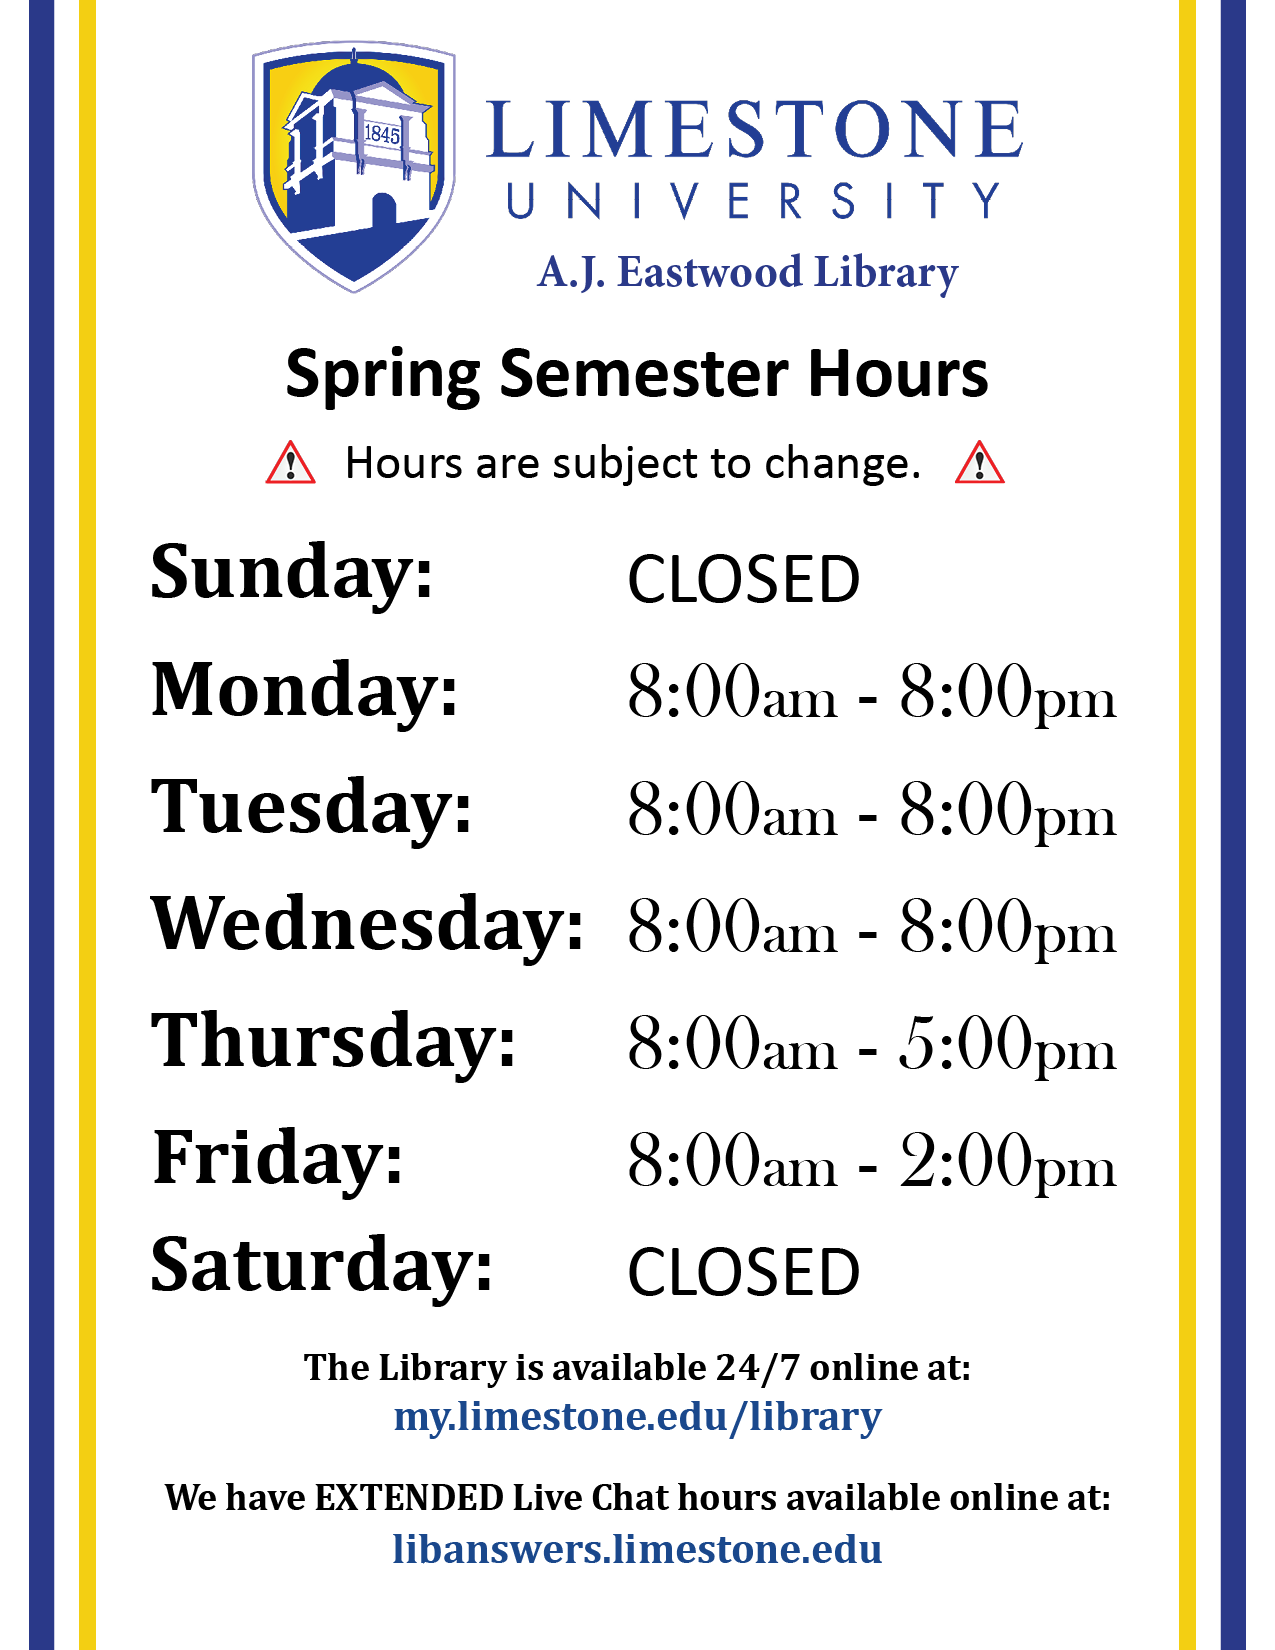 Library Spring Semester Hours (subject to change)